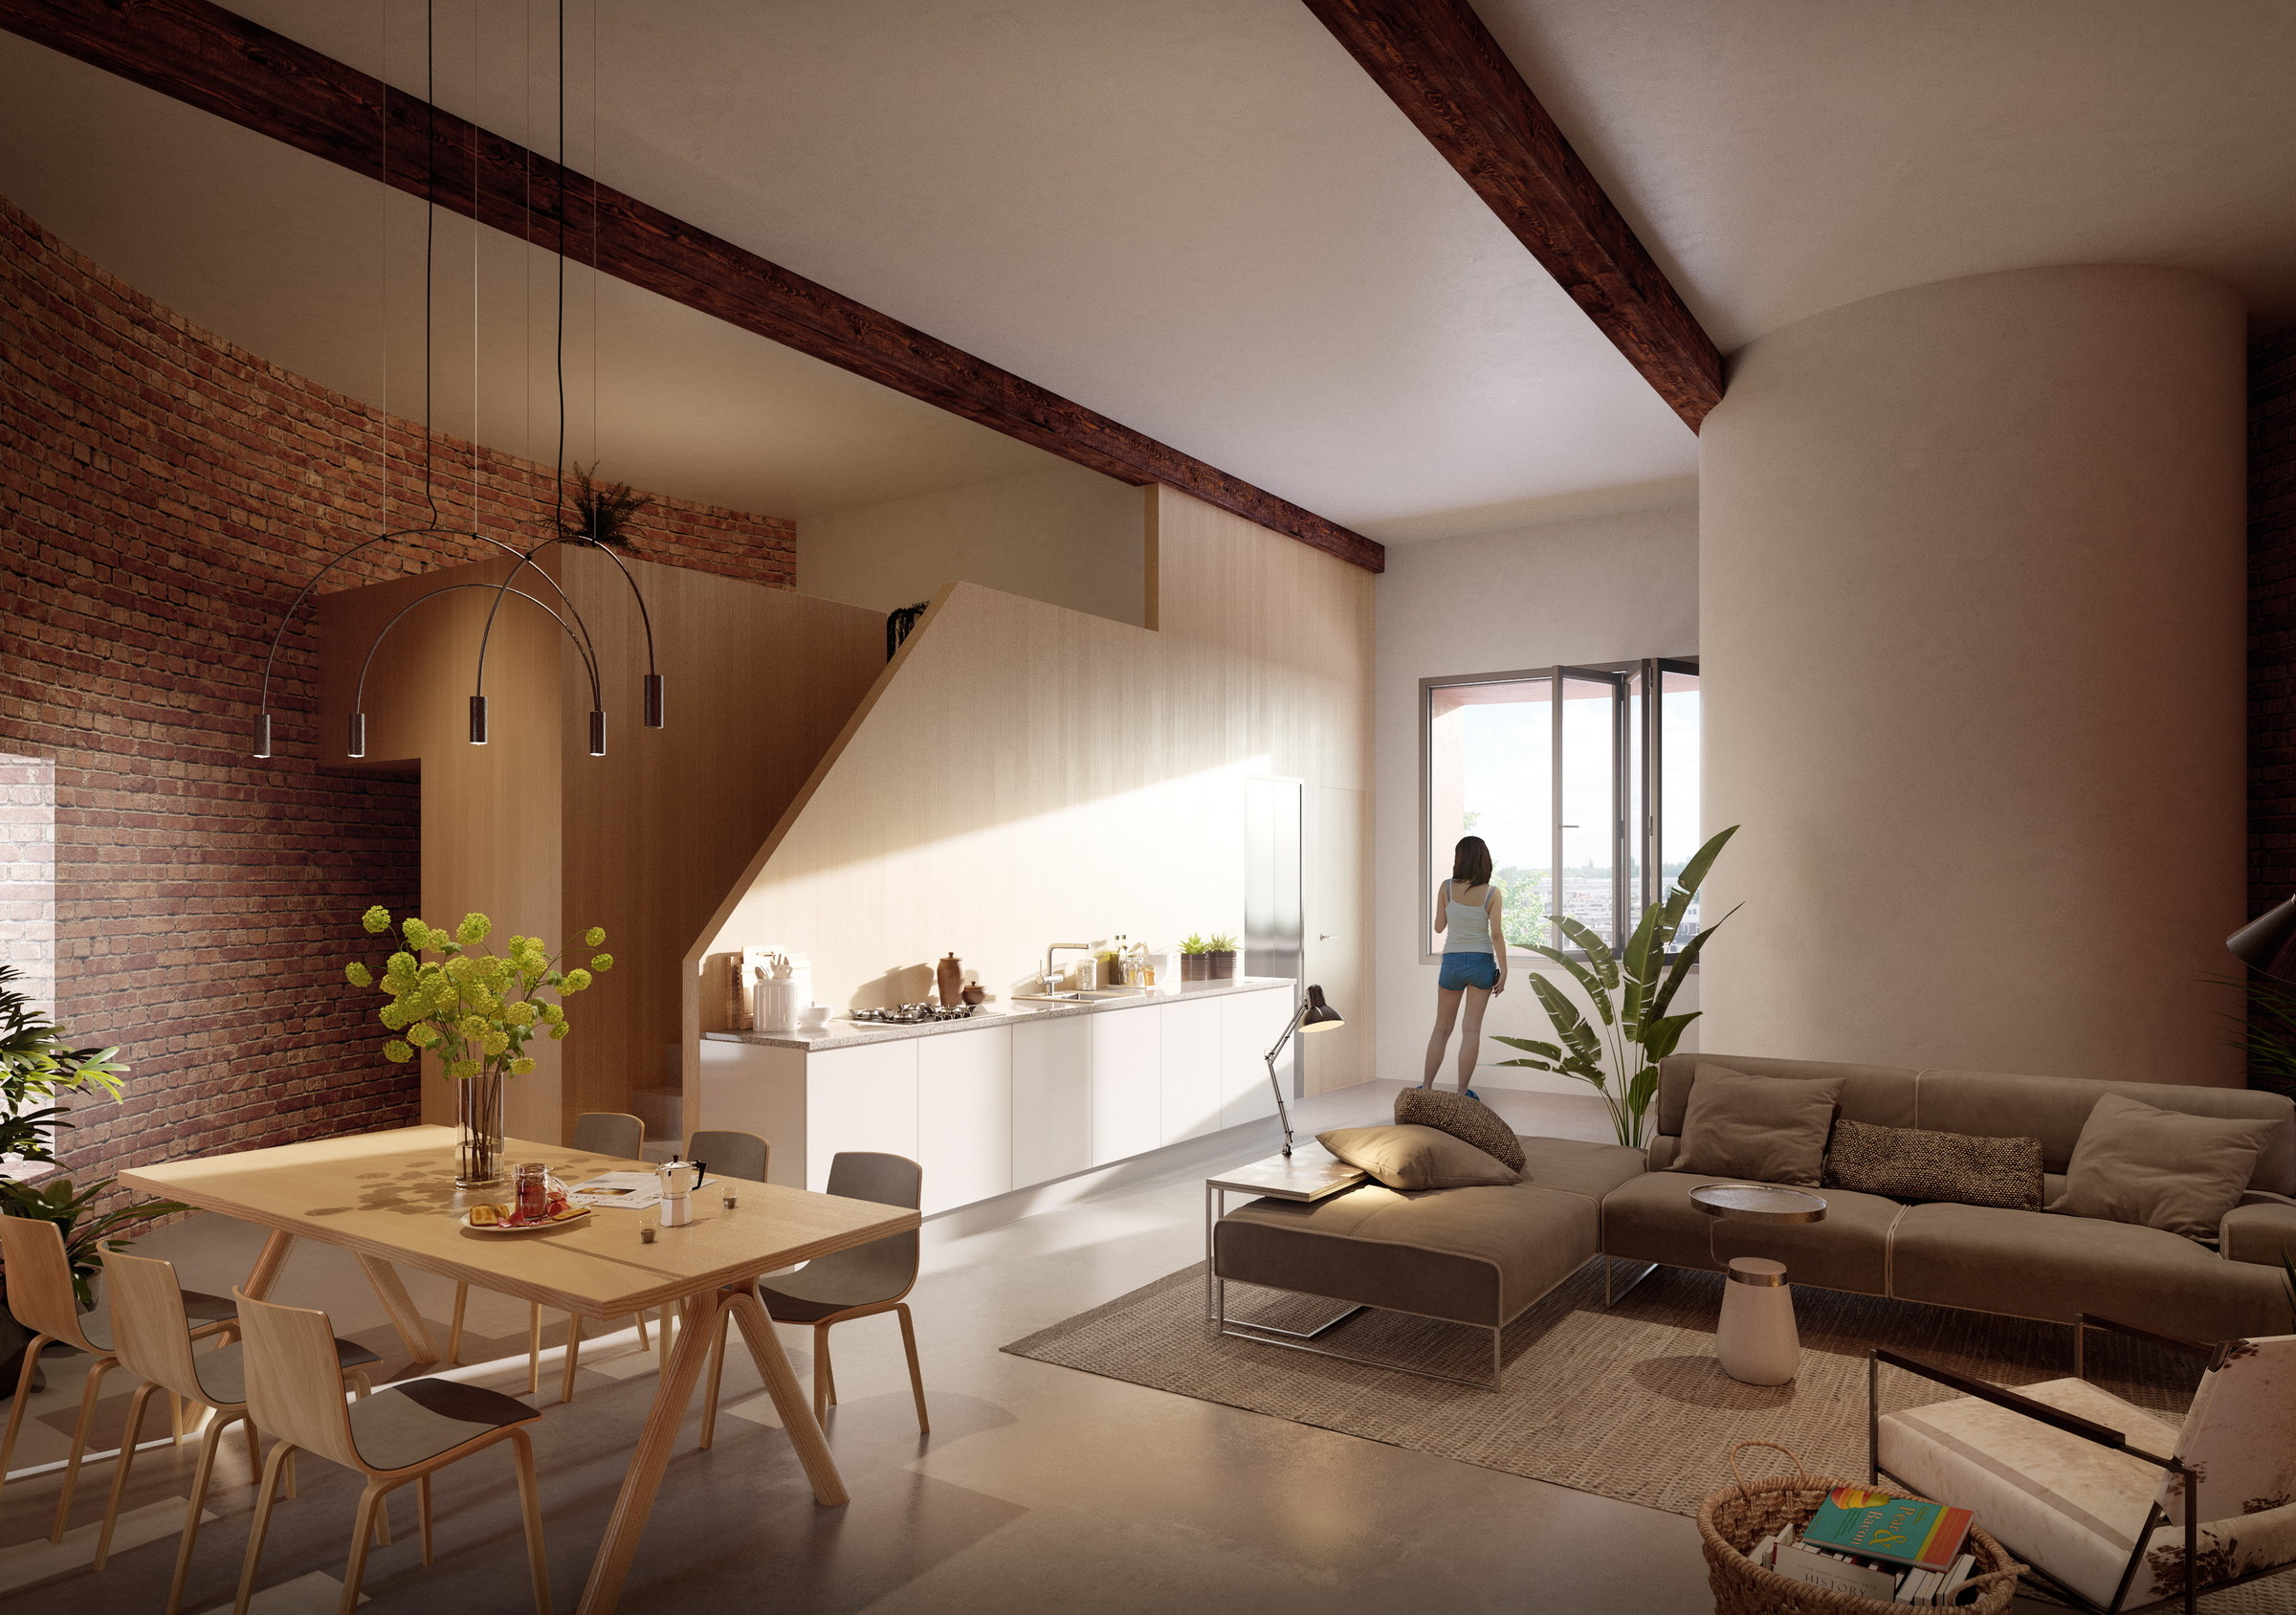 Water_tower-Zecc-transformation-housing-interior_02.jpg